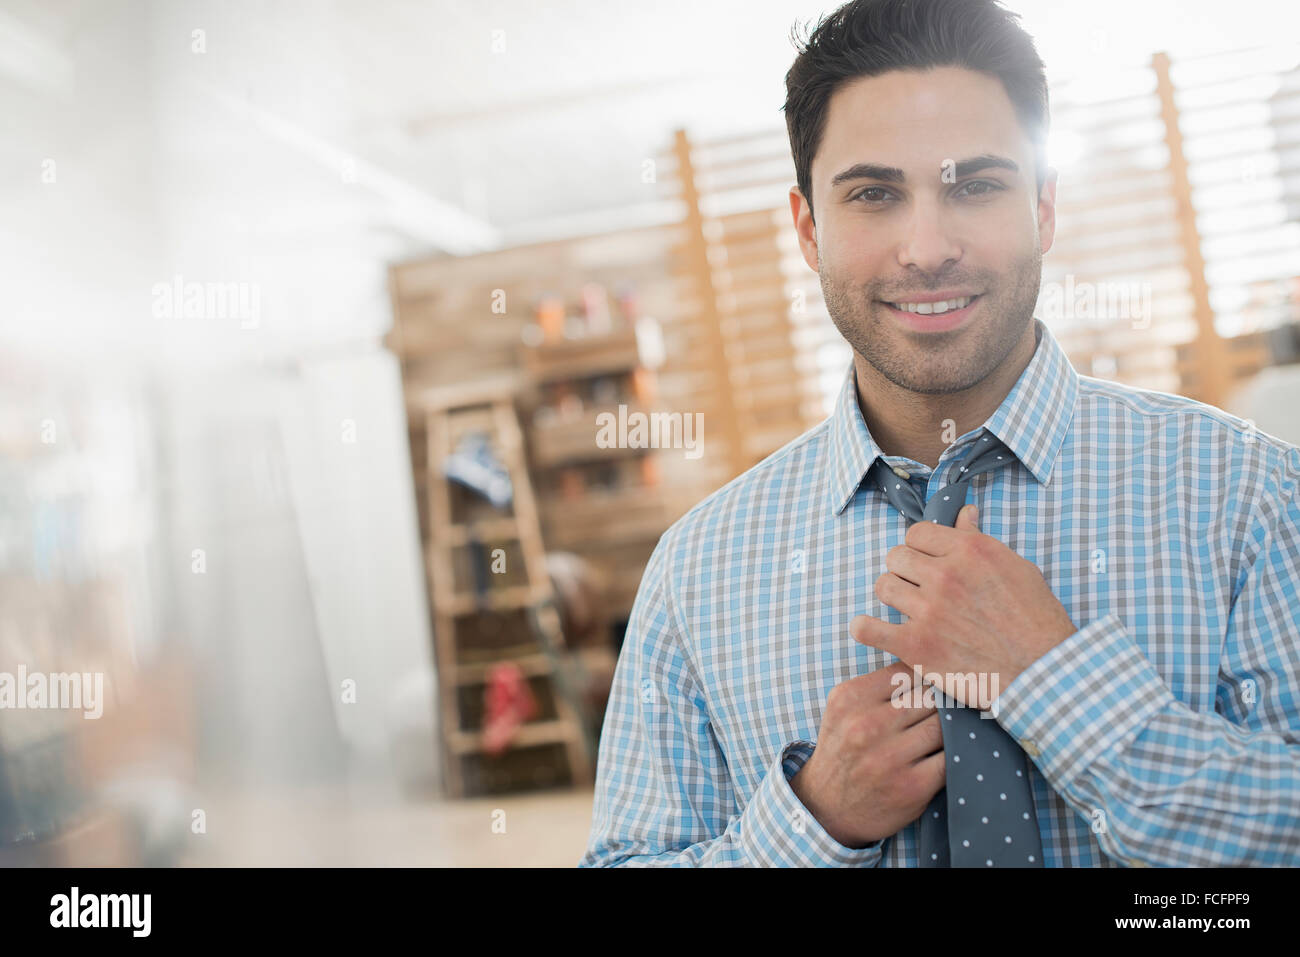 A man adjusting his tie looking at the camera. - Stock Image